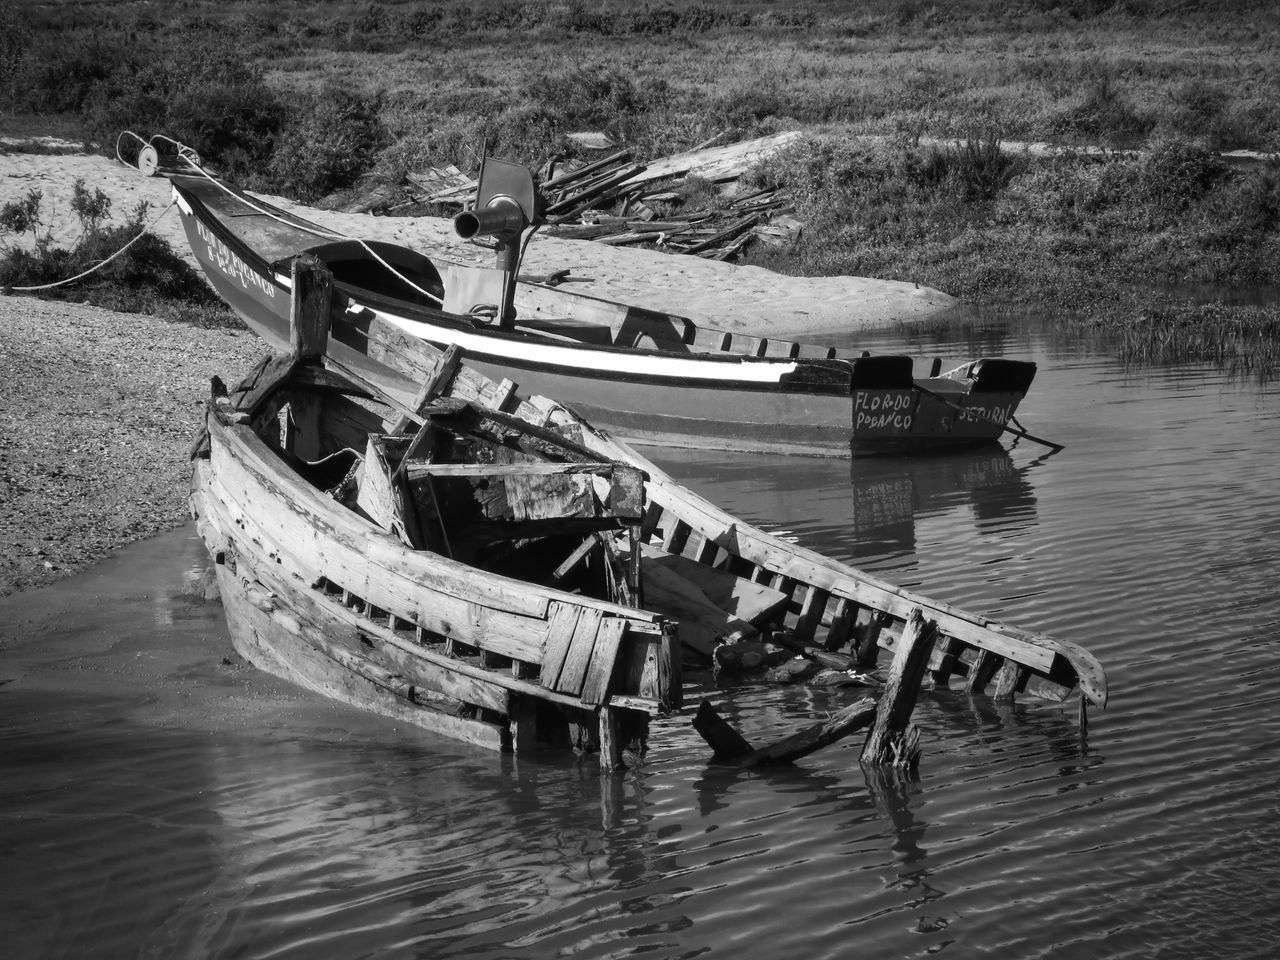 Abandoned Boat Boats Check This Out Day EyeEm Best Shots Mode Of Transport Moored Moorland Moors Nature Nautical Vessel No People Outdoors Rippled Water Riverside Run-down Shipwreck Shipwrecked Shore Solitude Transportation Water Weathered Wooden Boat My Year My View